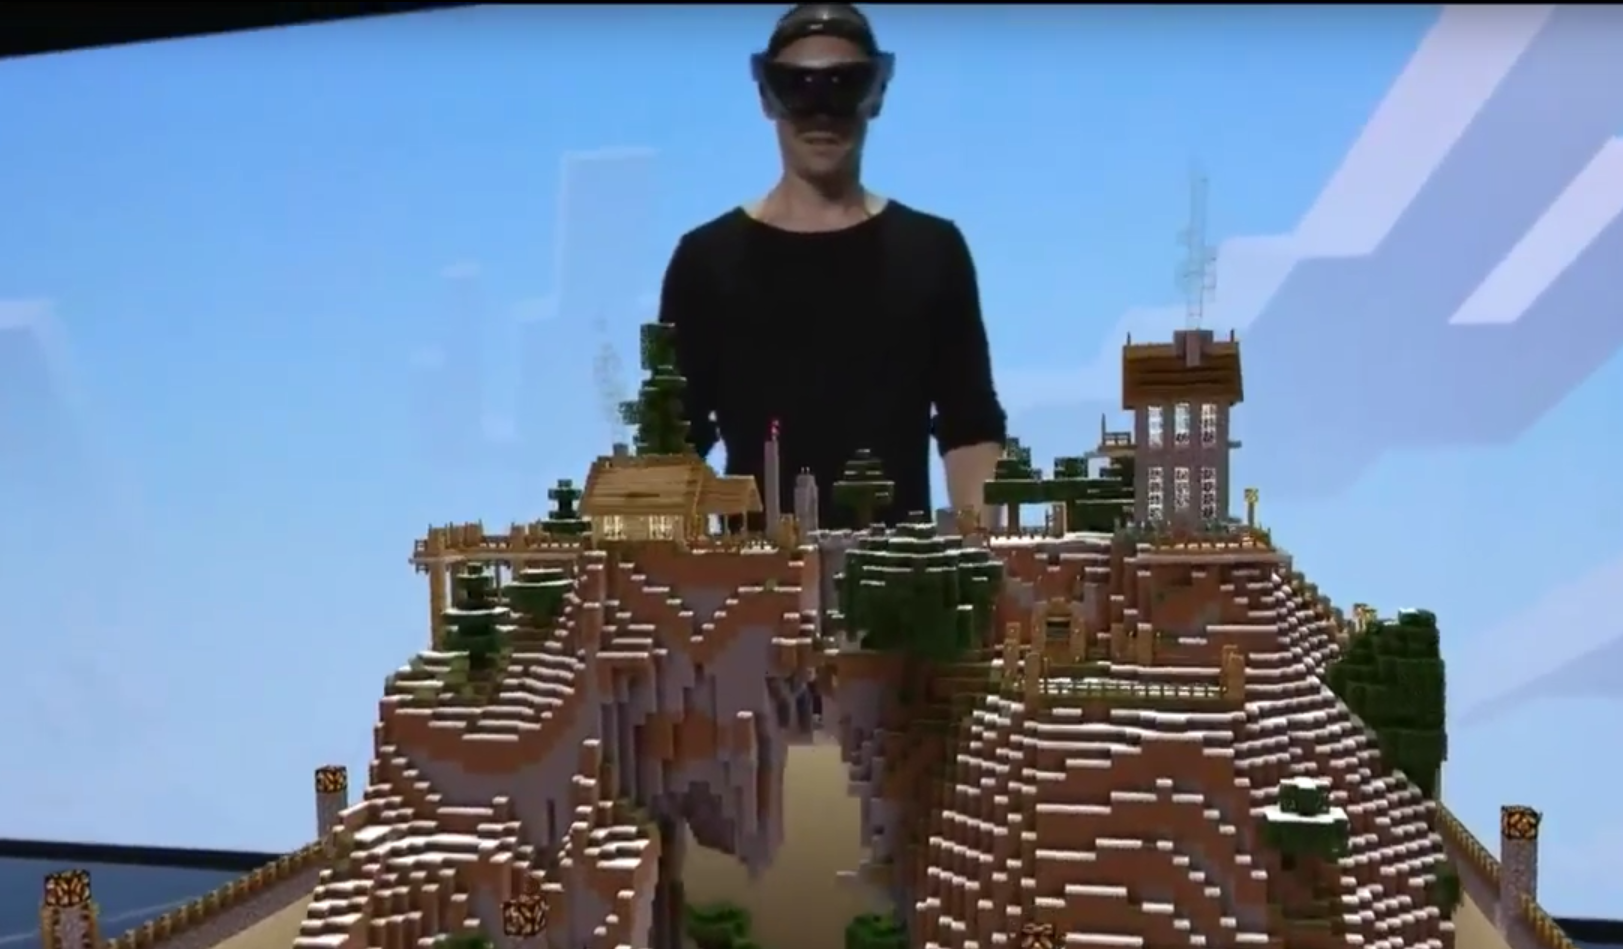 Hands on: Minecraft for the Oculus Rift may be the best VR